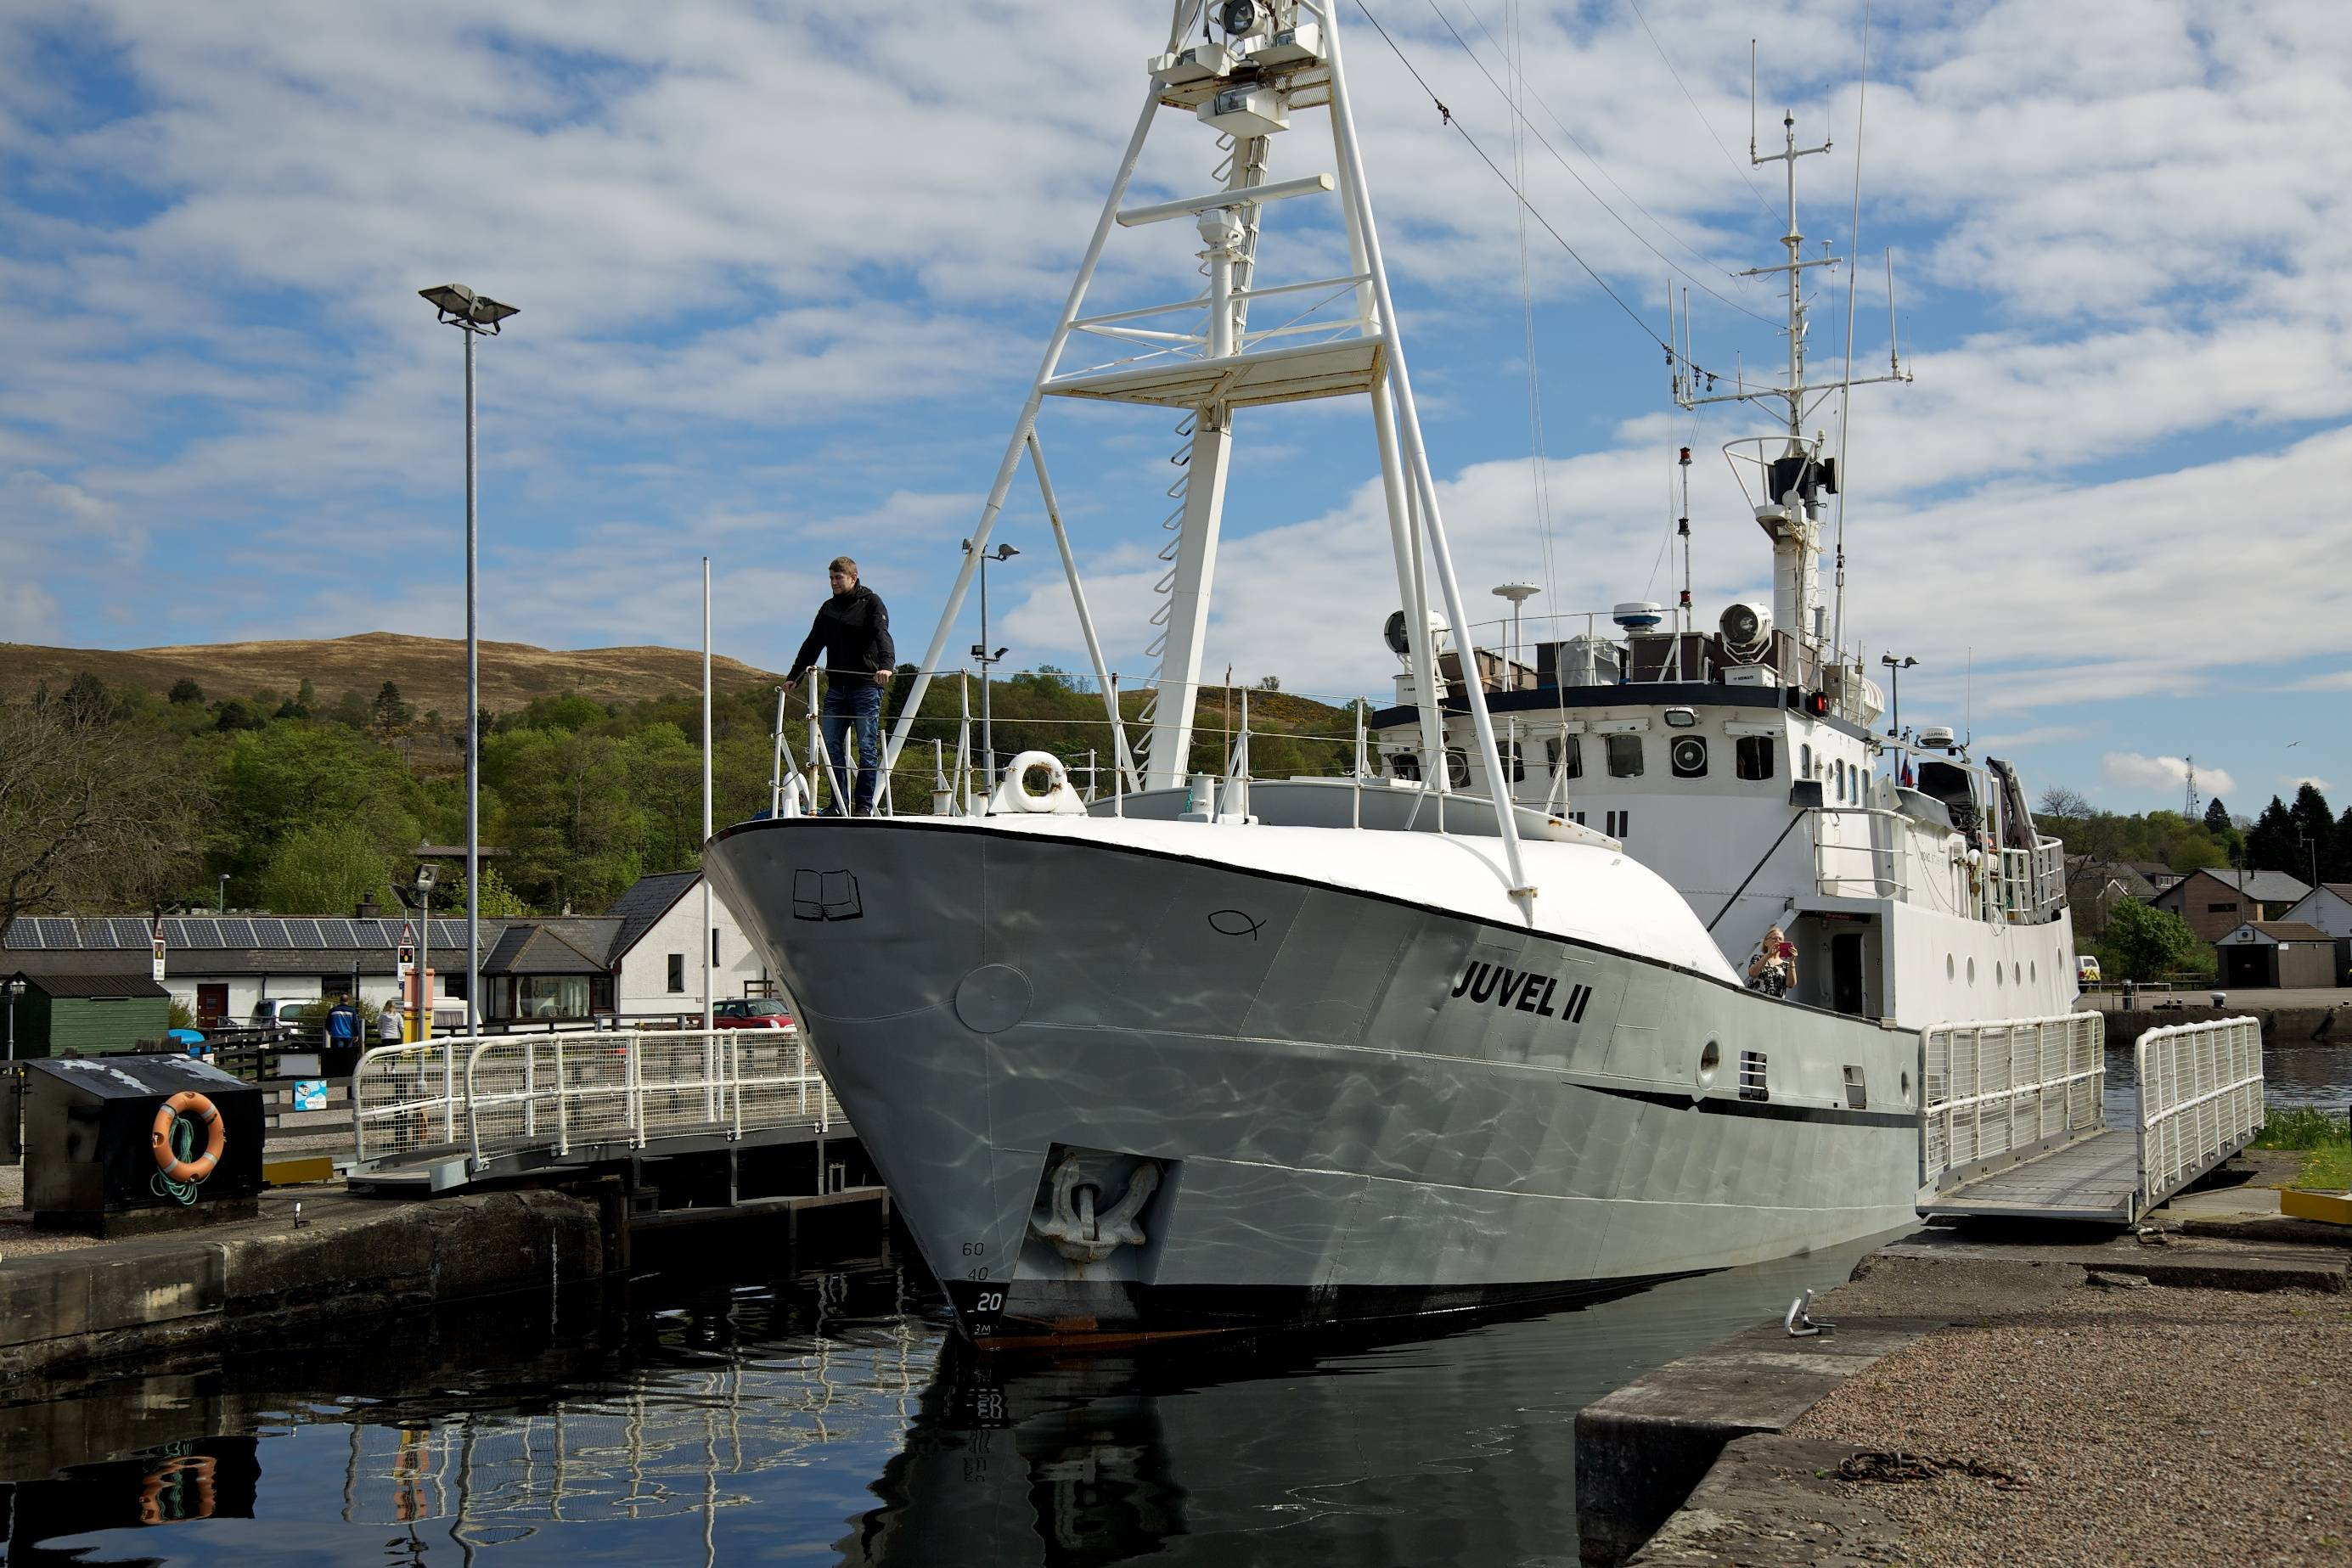 Juval II leaving the Caledonian Canal (West End)